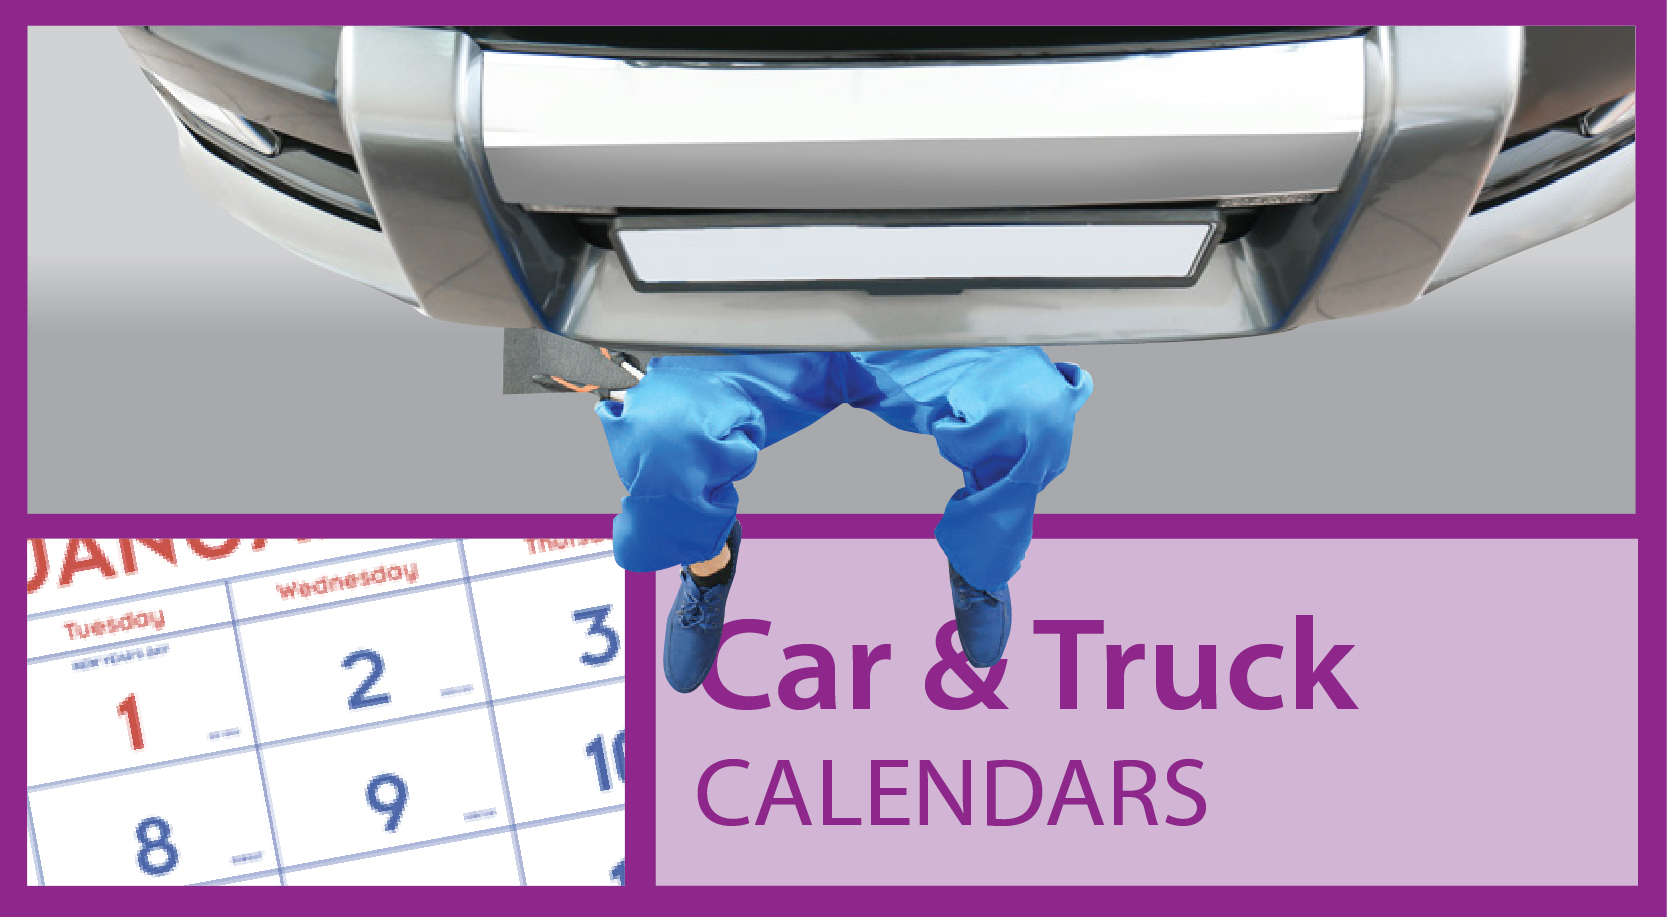 Tractor Calendars | Vehicle Calendars